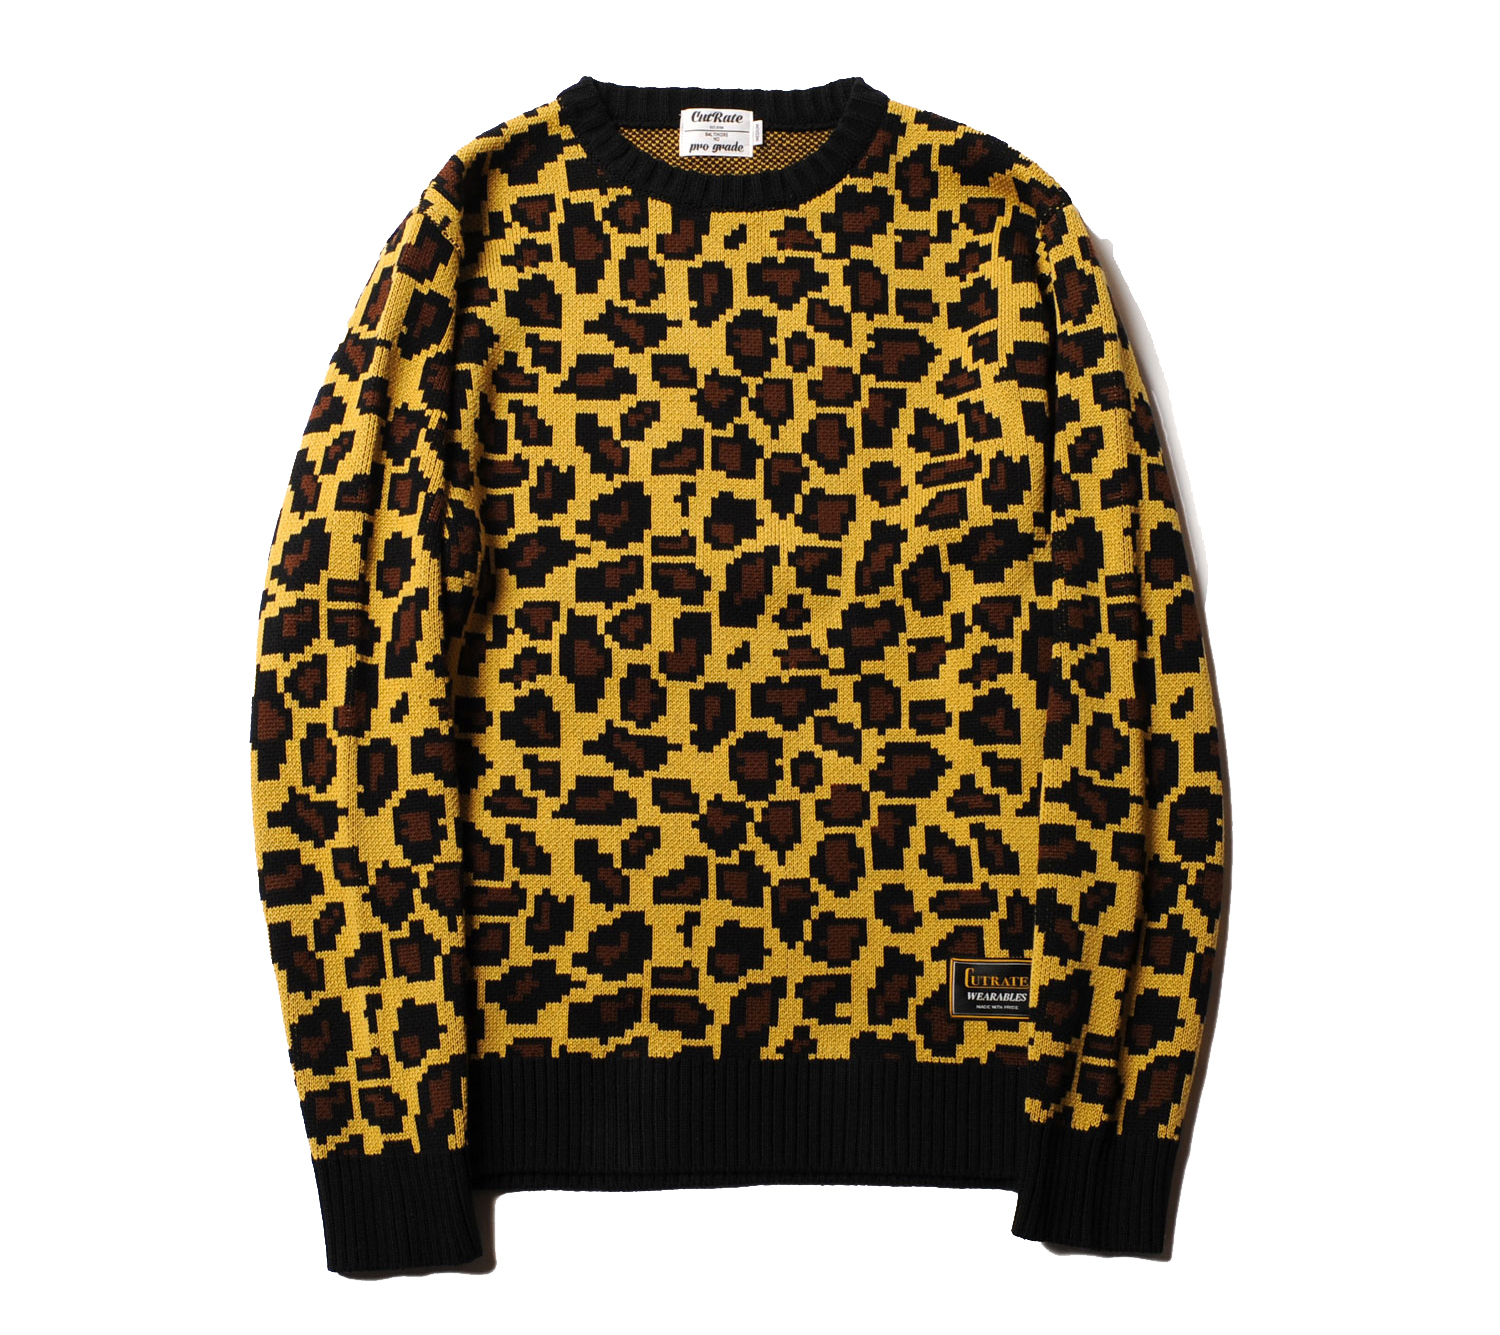 LEOPARD CREW NECK KNIT SWEATER